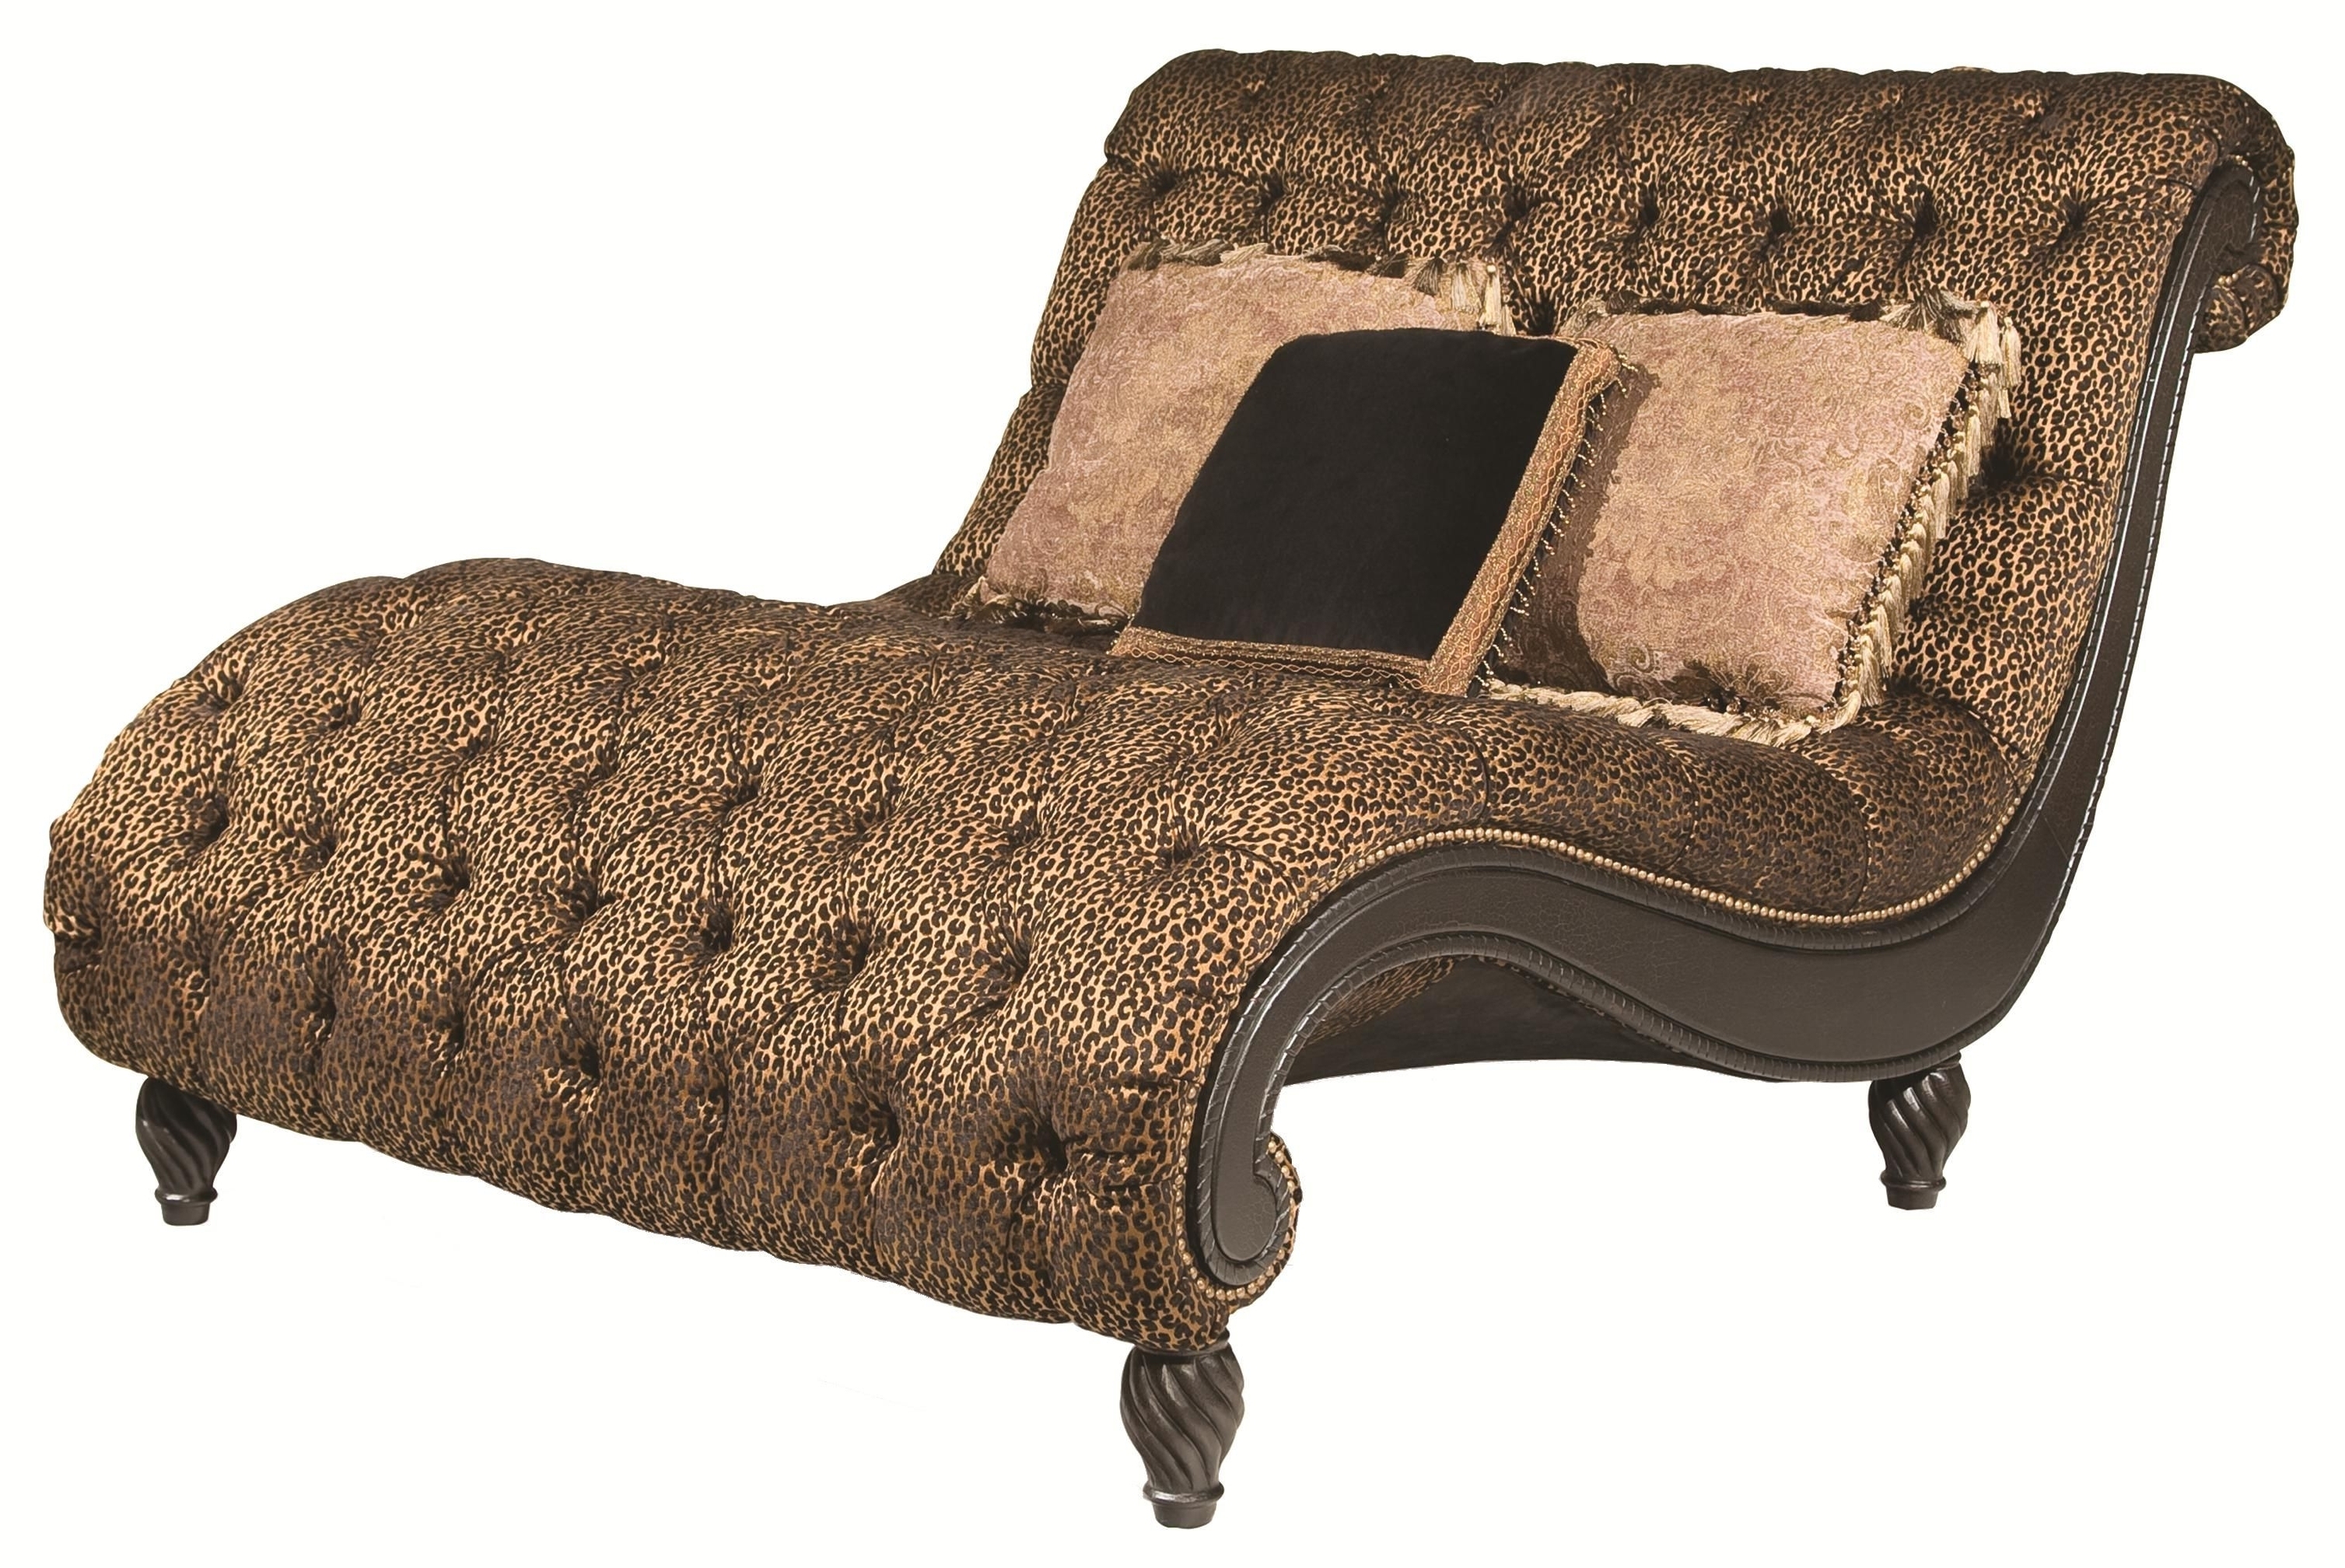 When I Think Of Home Regarding Recent Zebra Chaise Lounges (View 13 of 15)